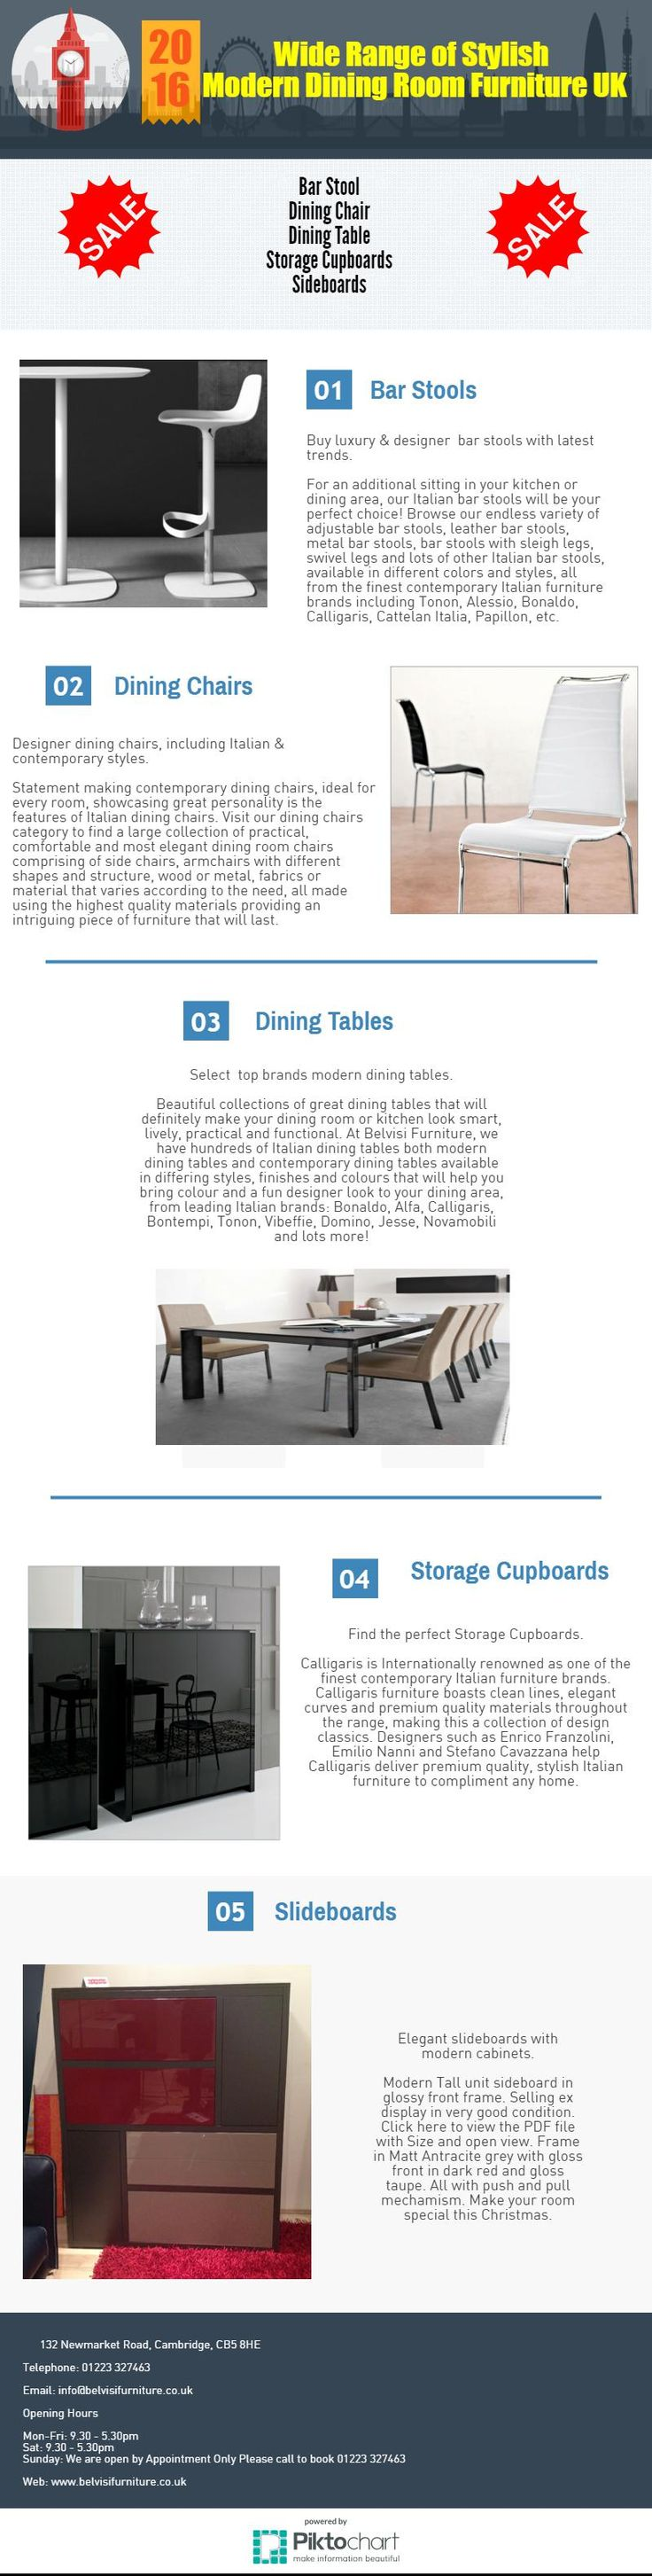 This #infographic Shows The Exclusive Range Of Modern #dining #furniture .A  Mix